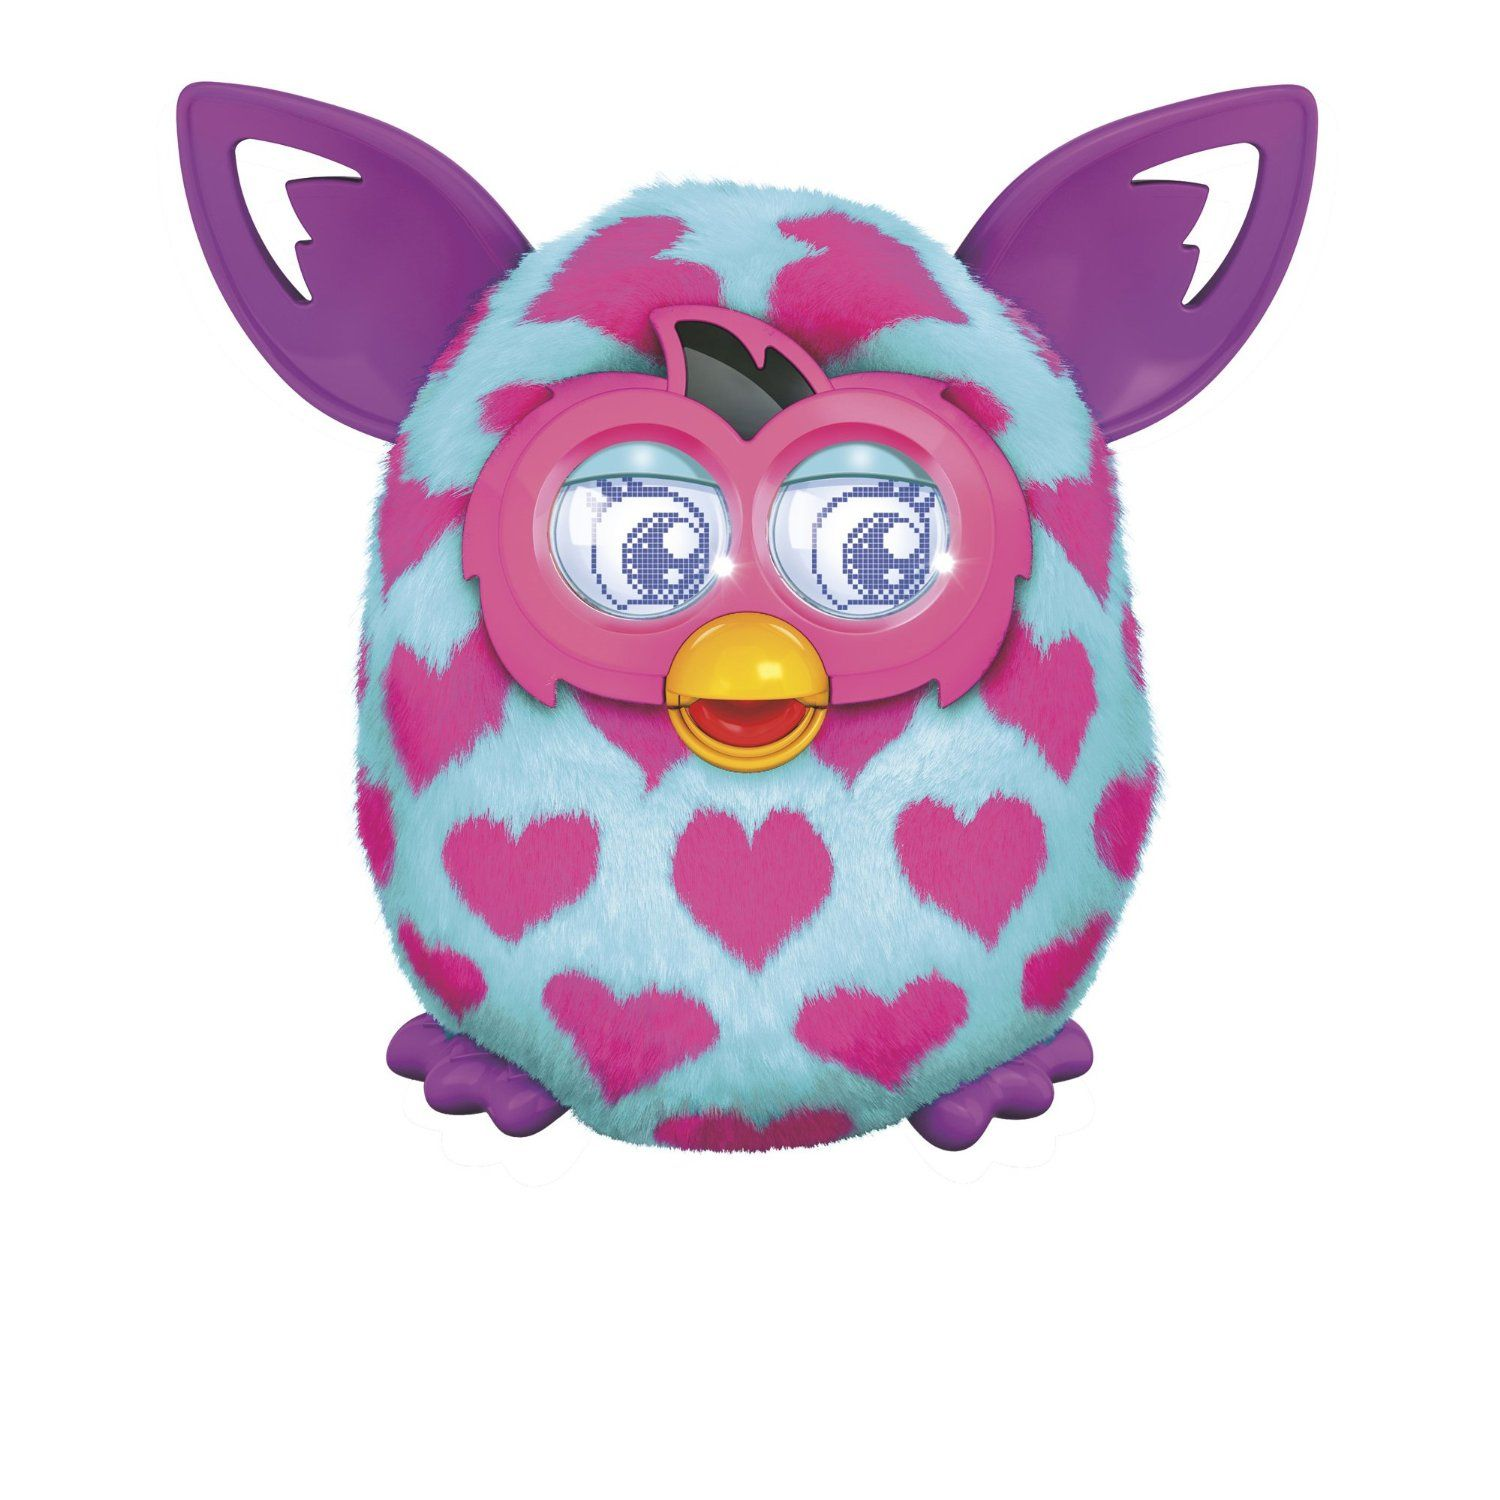 Your Furby Boom Responds To You Changes Personalities Based On How You Treat It Dances To Music Talks To Other Furby Boom Crea Furby Boom Furby Heart Plush